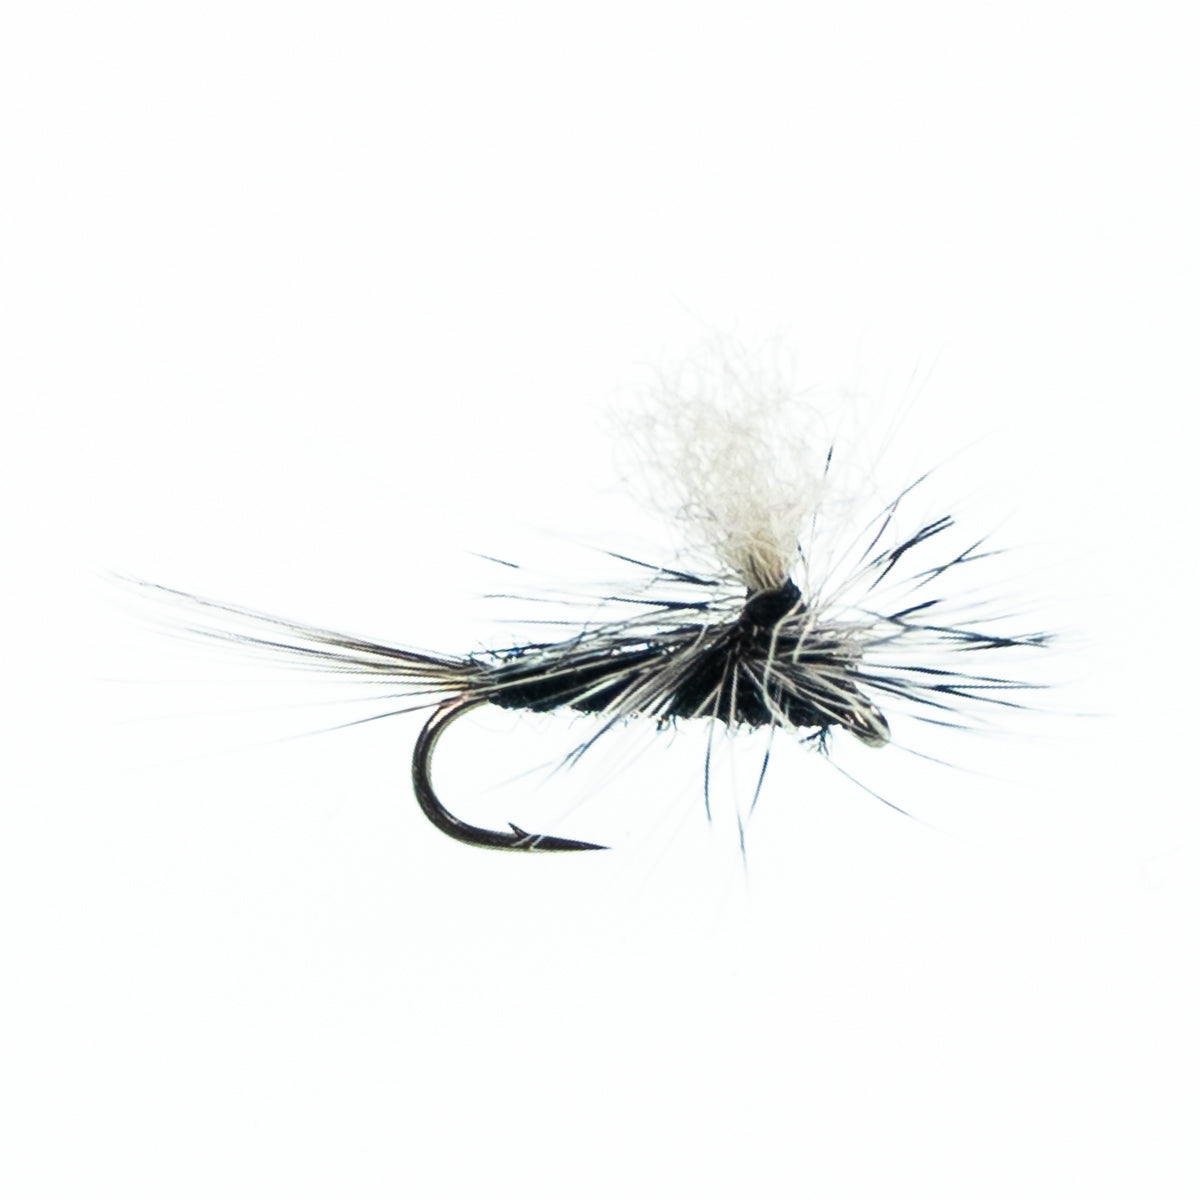 14 or 16 Solitude Fly Co 1 Tungsten Jig Brush Hog Fly Choice of Size 12